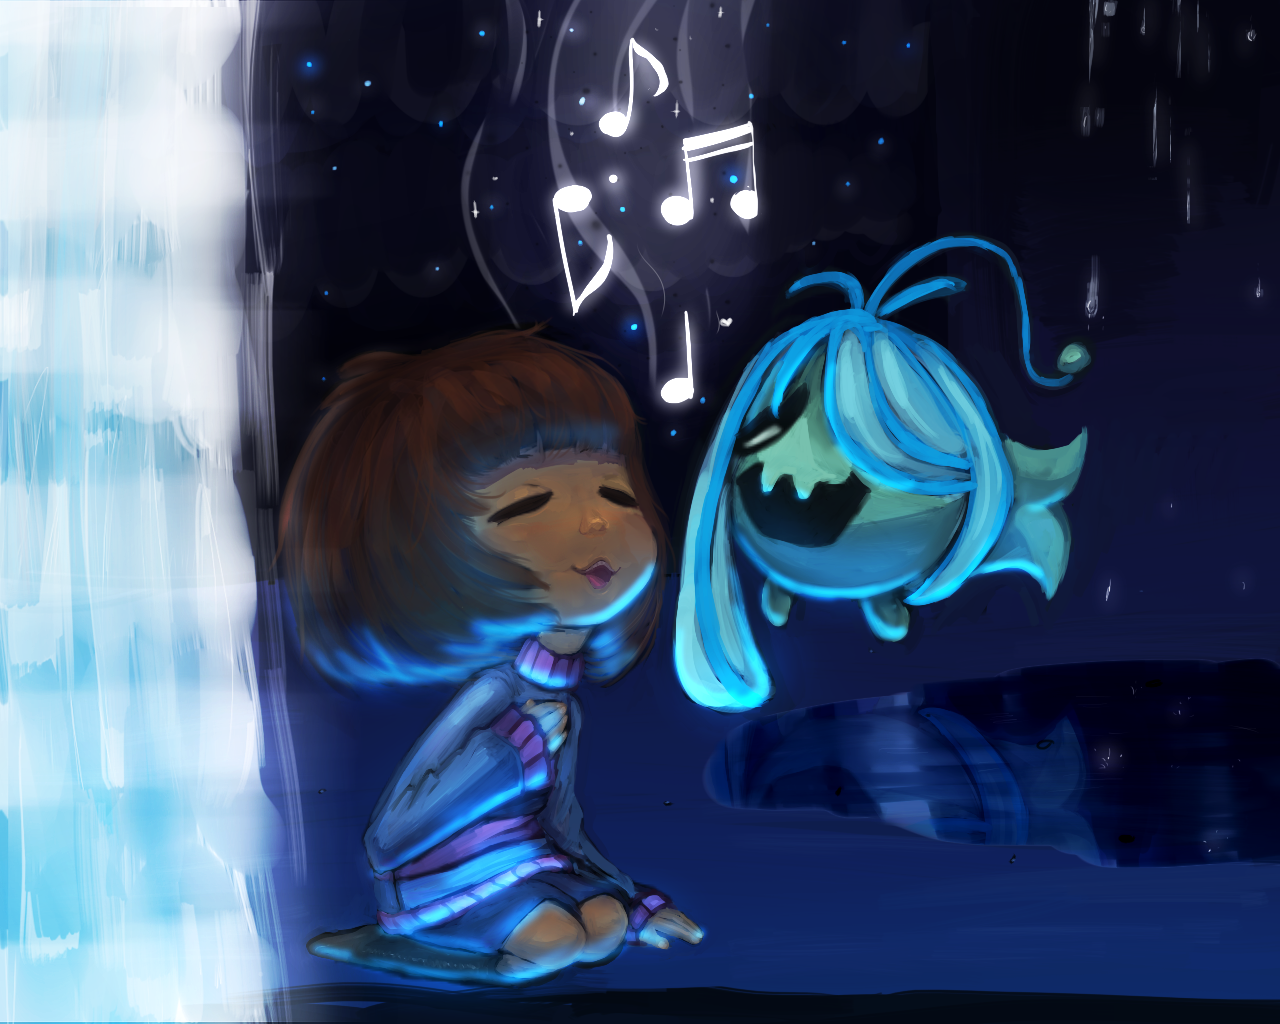 undertale frisk in waterfall - photo #18